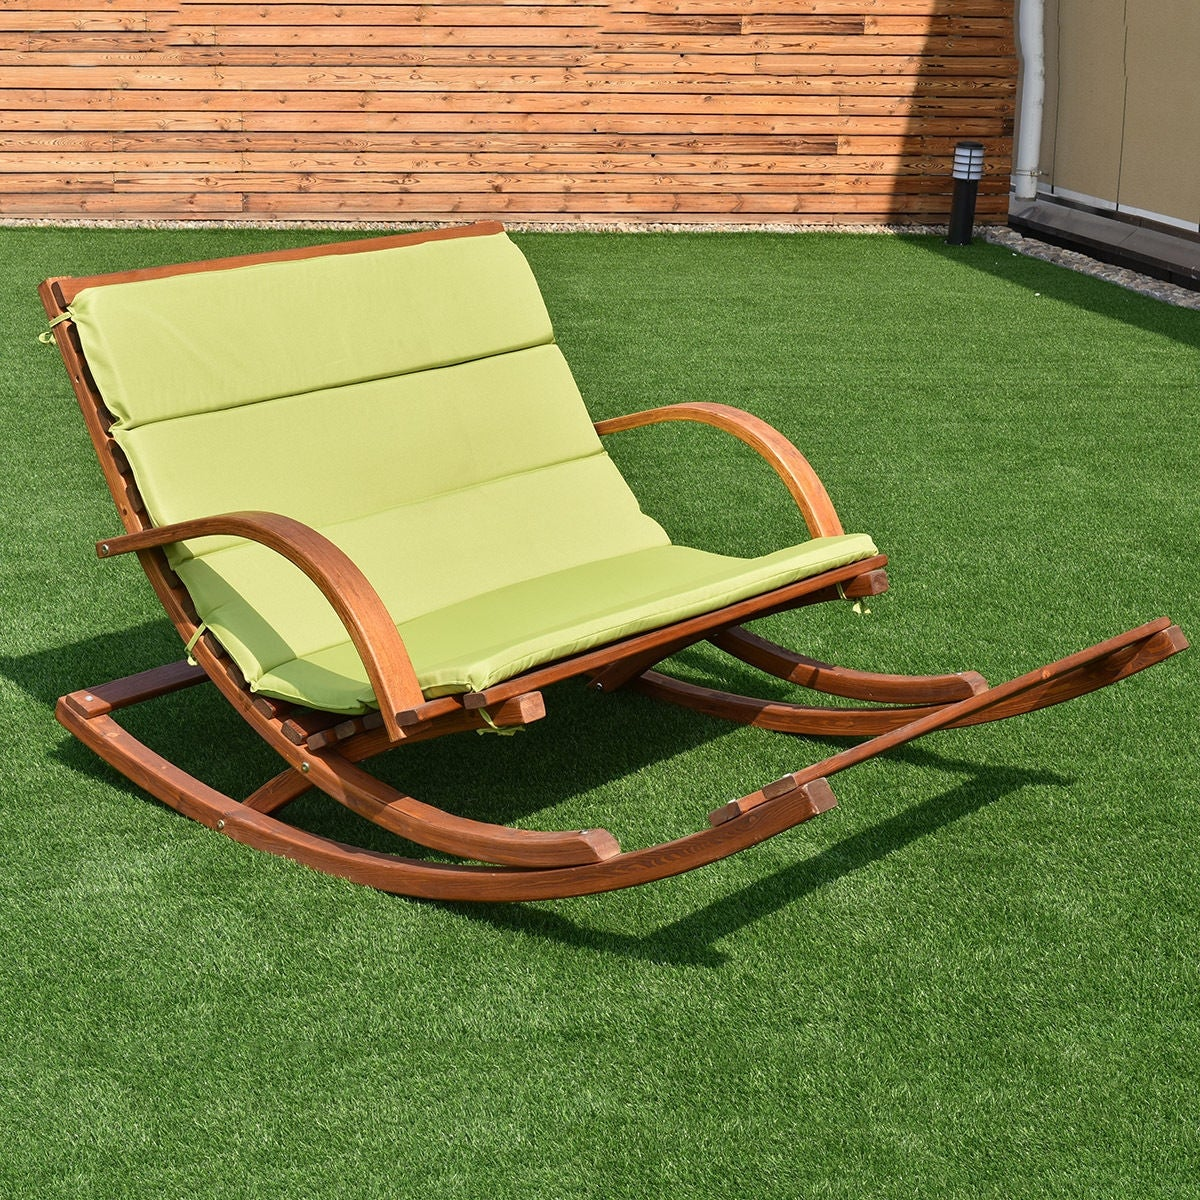 Merveilleux Shop Costway Patio Wood 2 Person Rocking Lounge Chair Wood Slat Porch Furni  W/Green Cushion   Free Shipping Today   Overstock.com   15919060